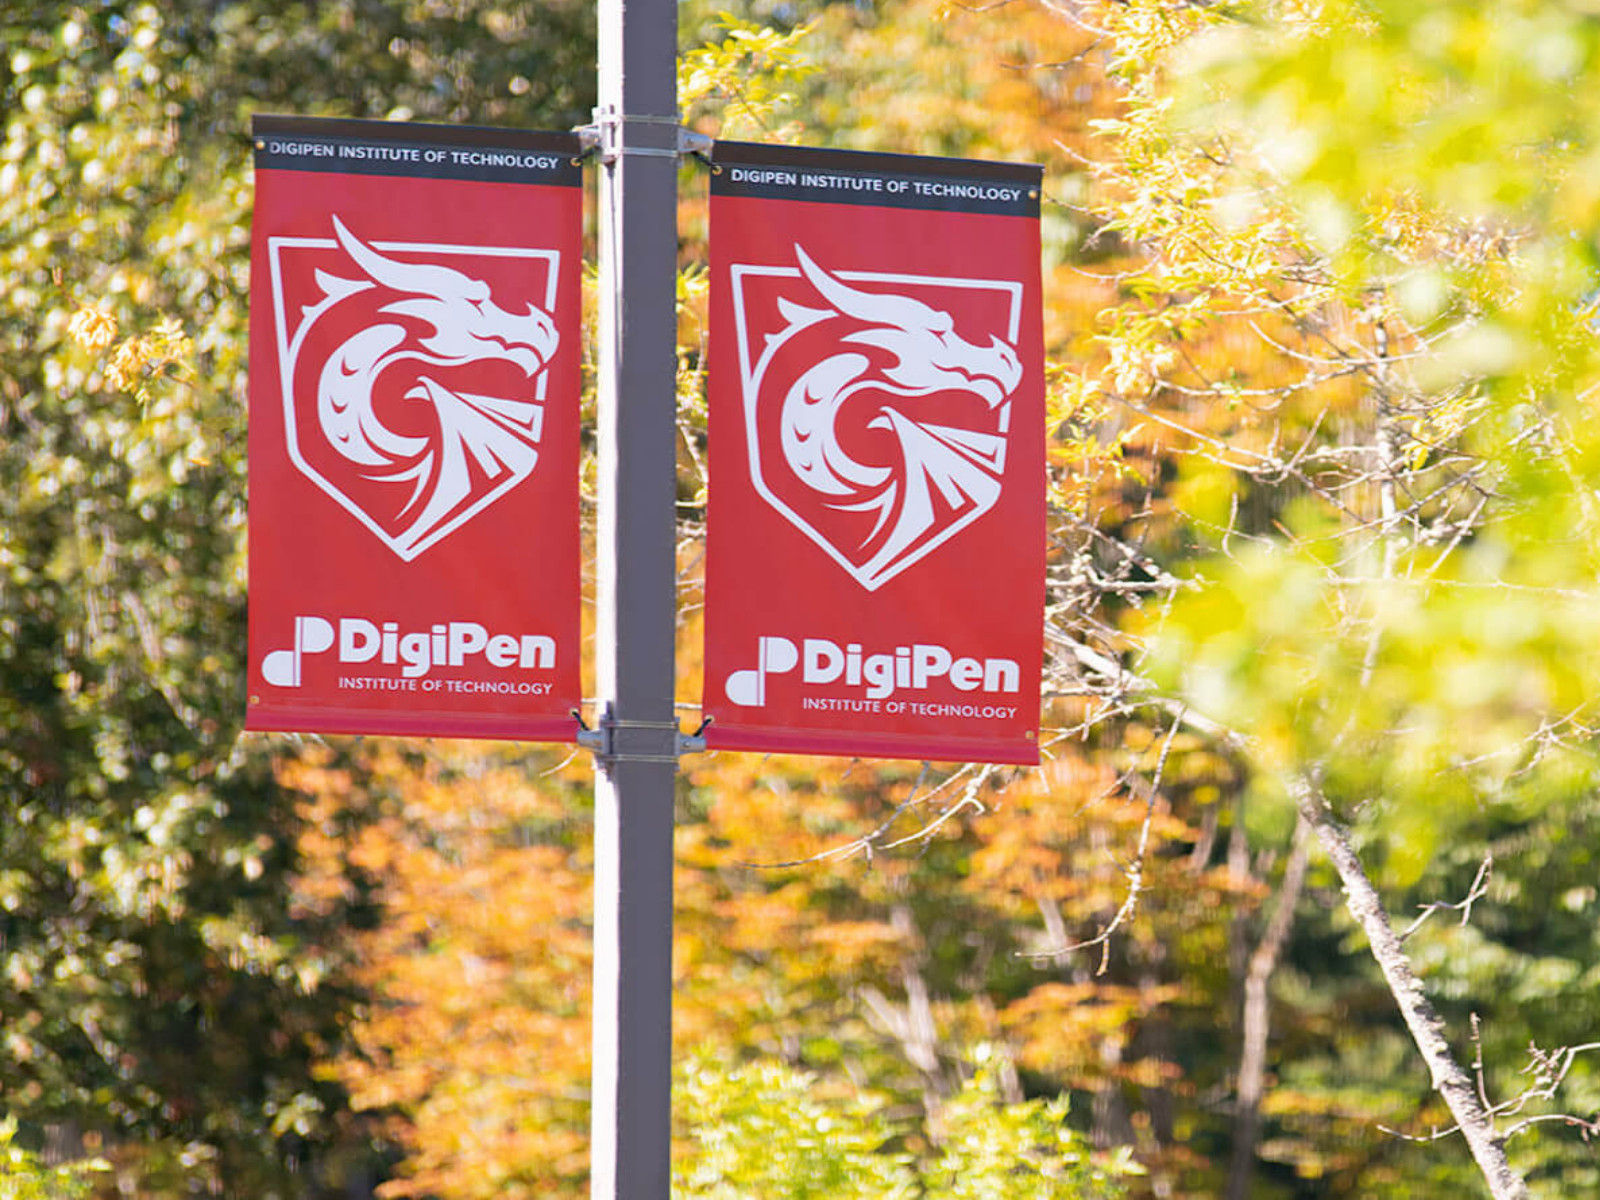 Two DigiPen banners on pole set against fall scenery